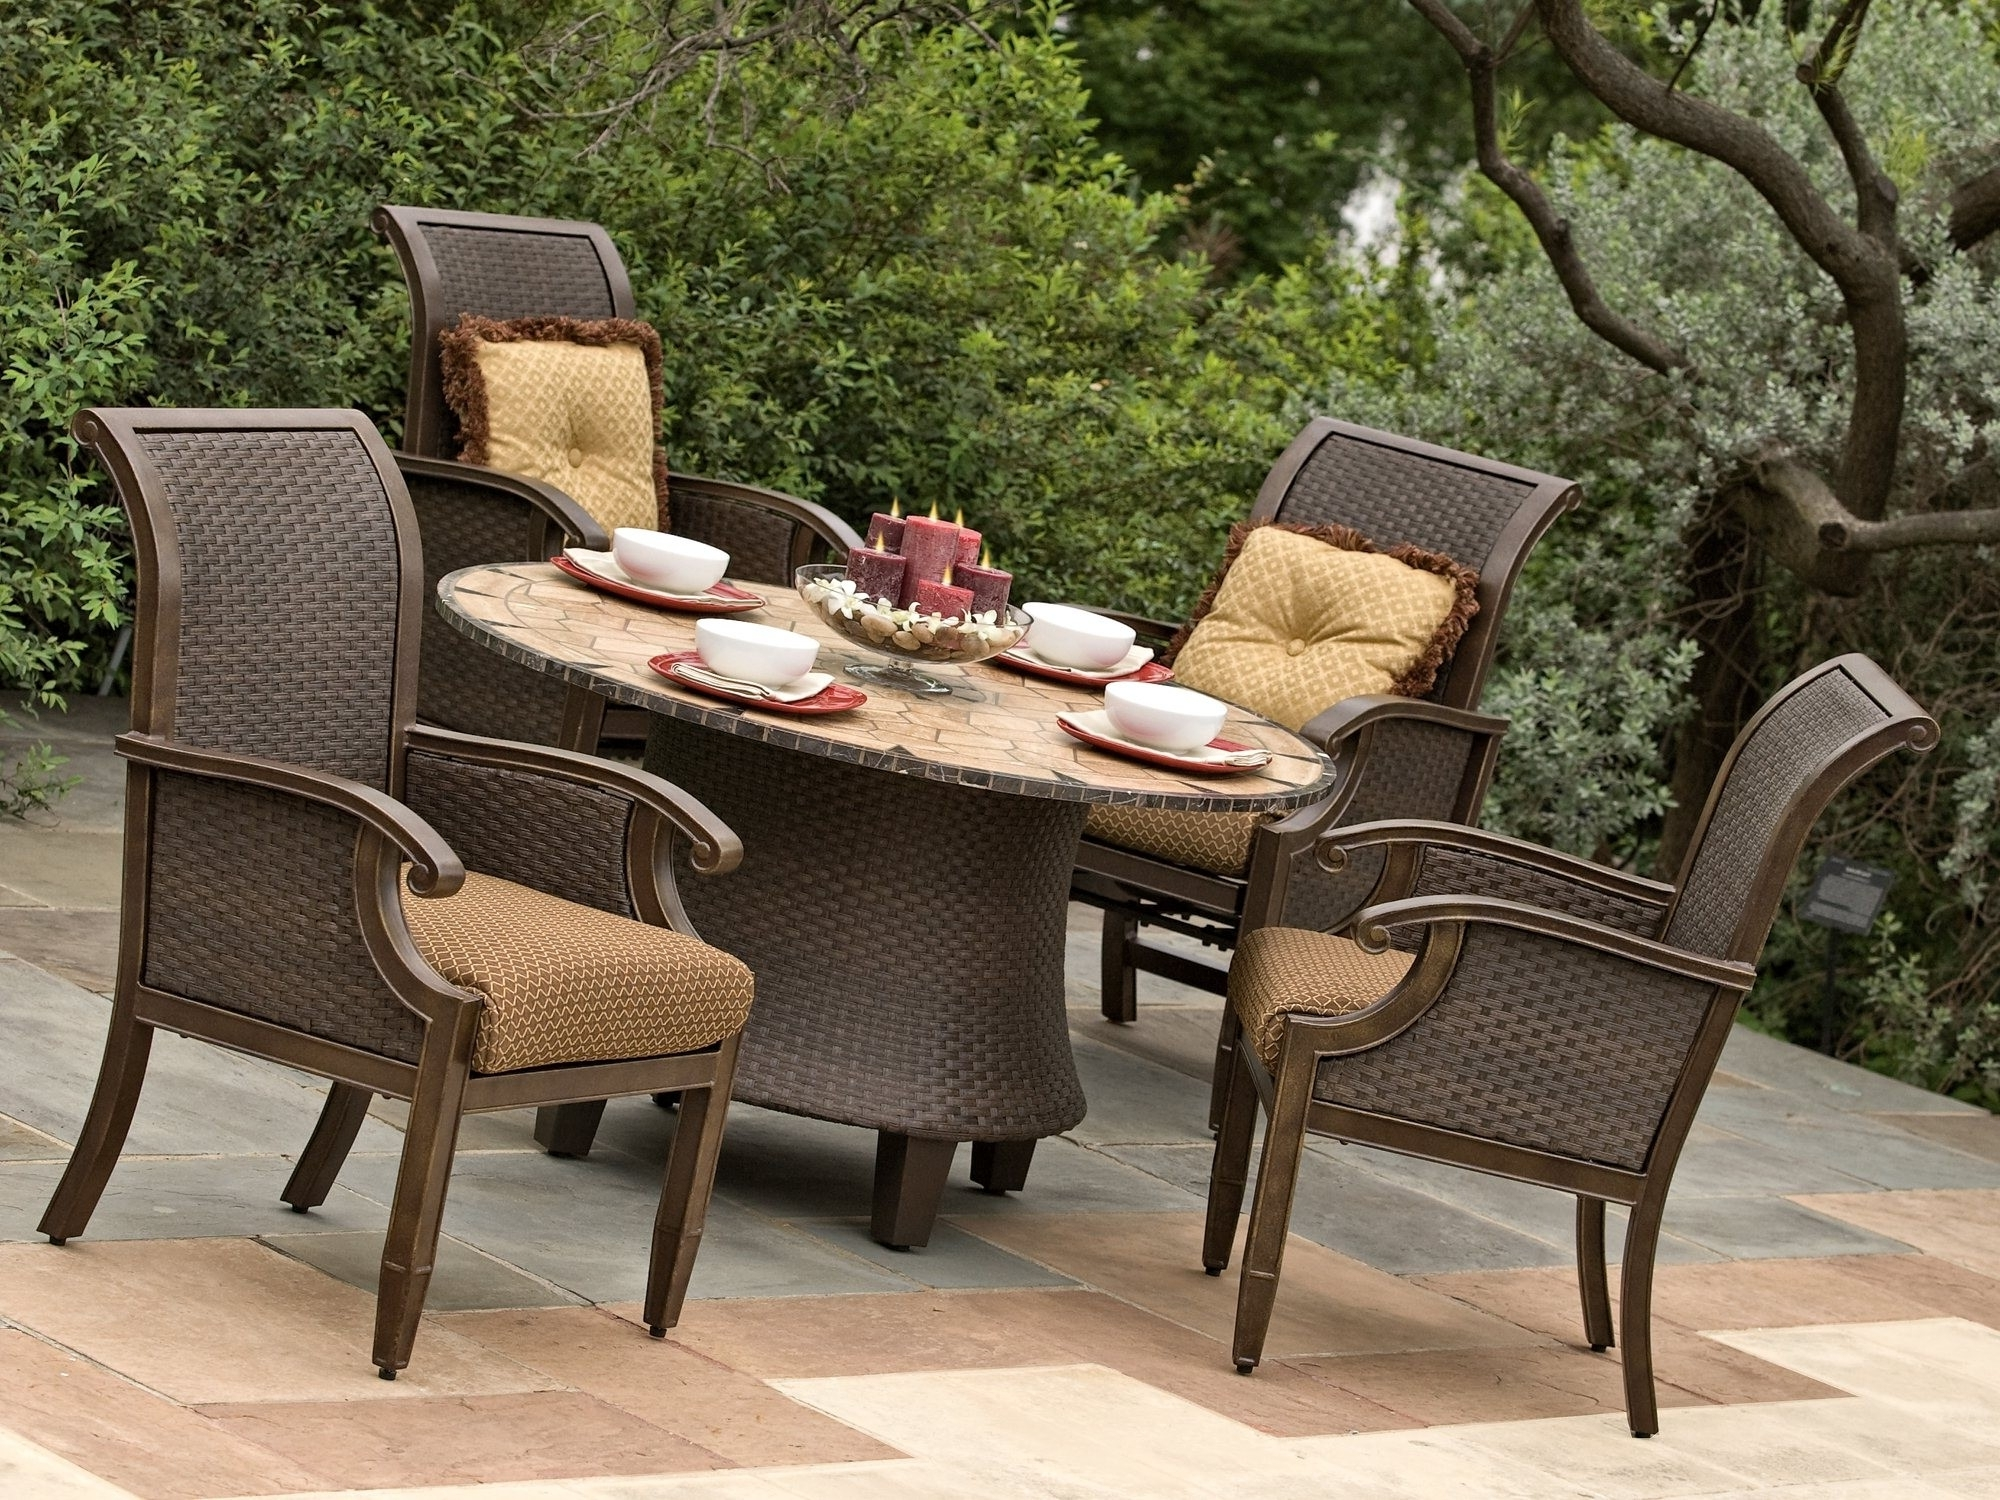 Marvelous Outdoor Patio Furniture 27 Kor Relaxed Location Dining 923 In Most Current Patio Conversation Dining Sets (View 10 of 20)